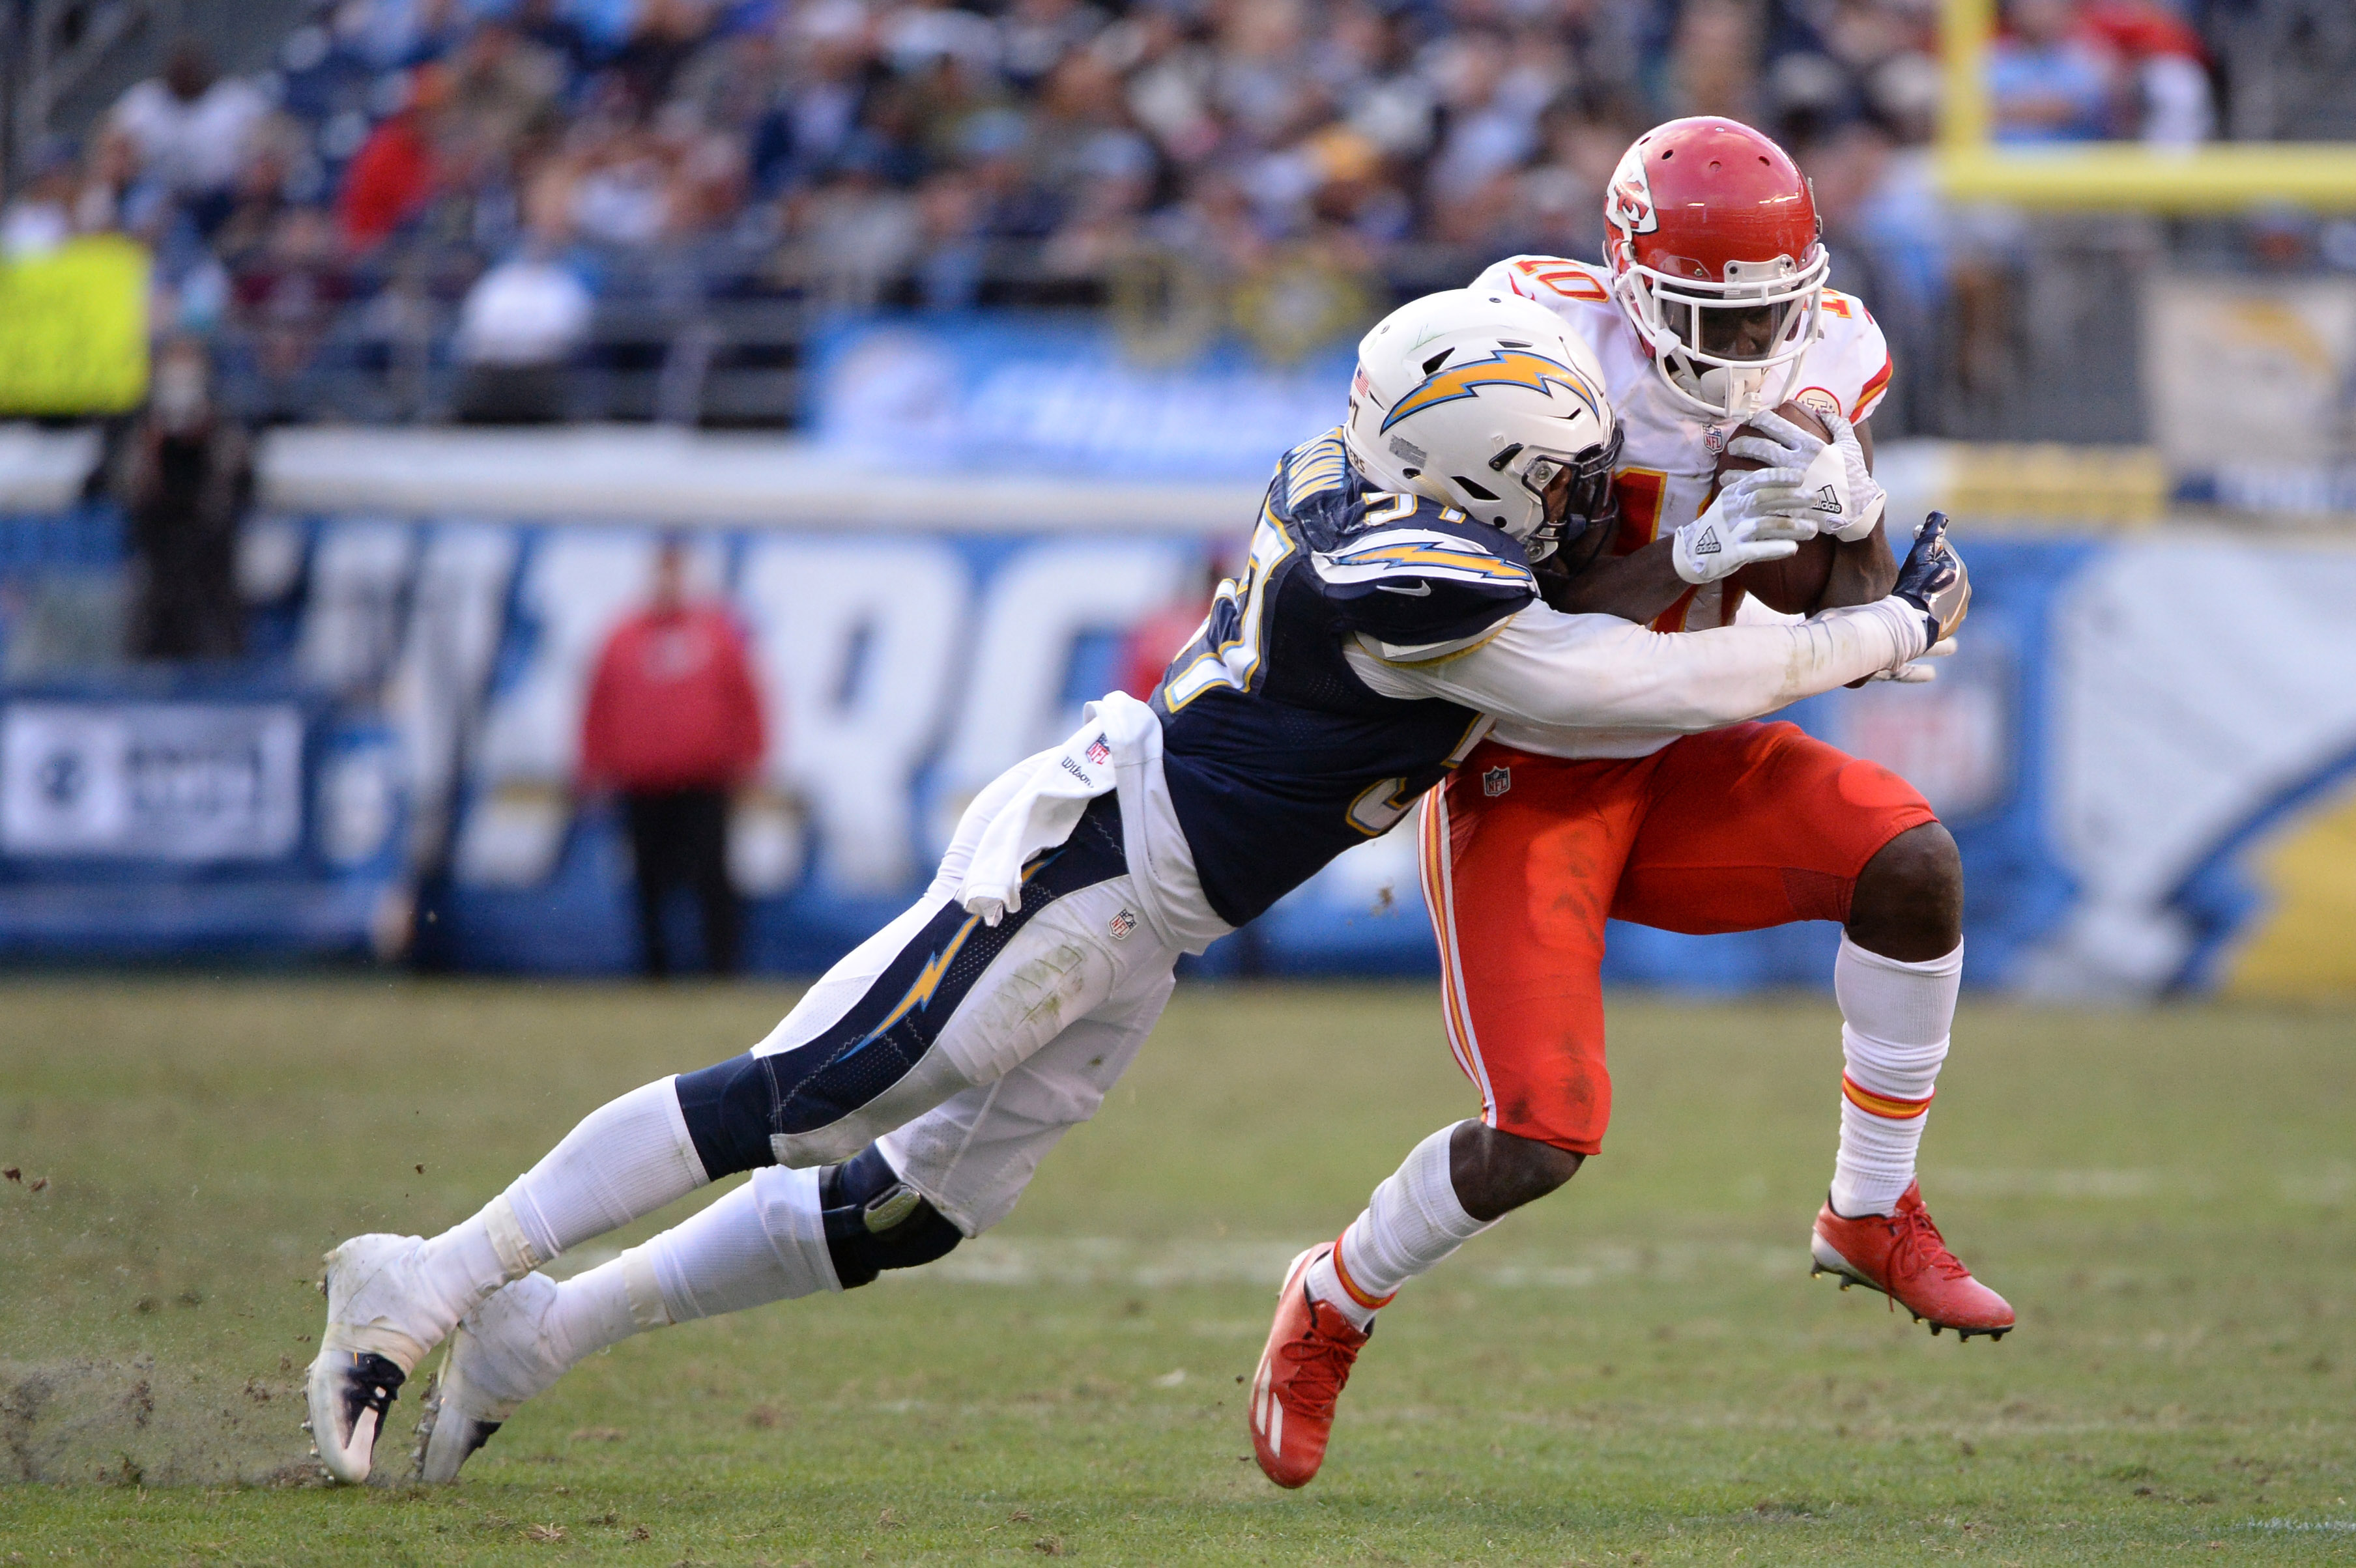 9782928-nfl-kansas-city-chiefs-at-san-diego-chargers